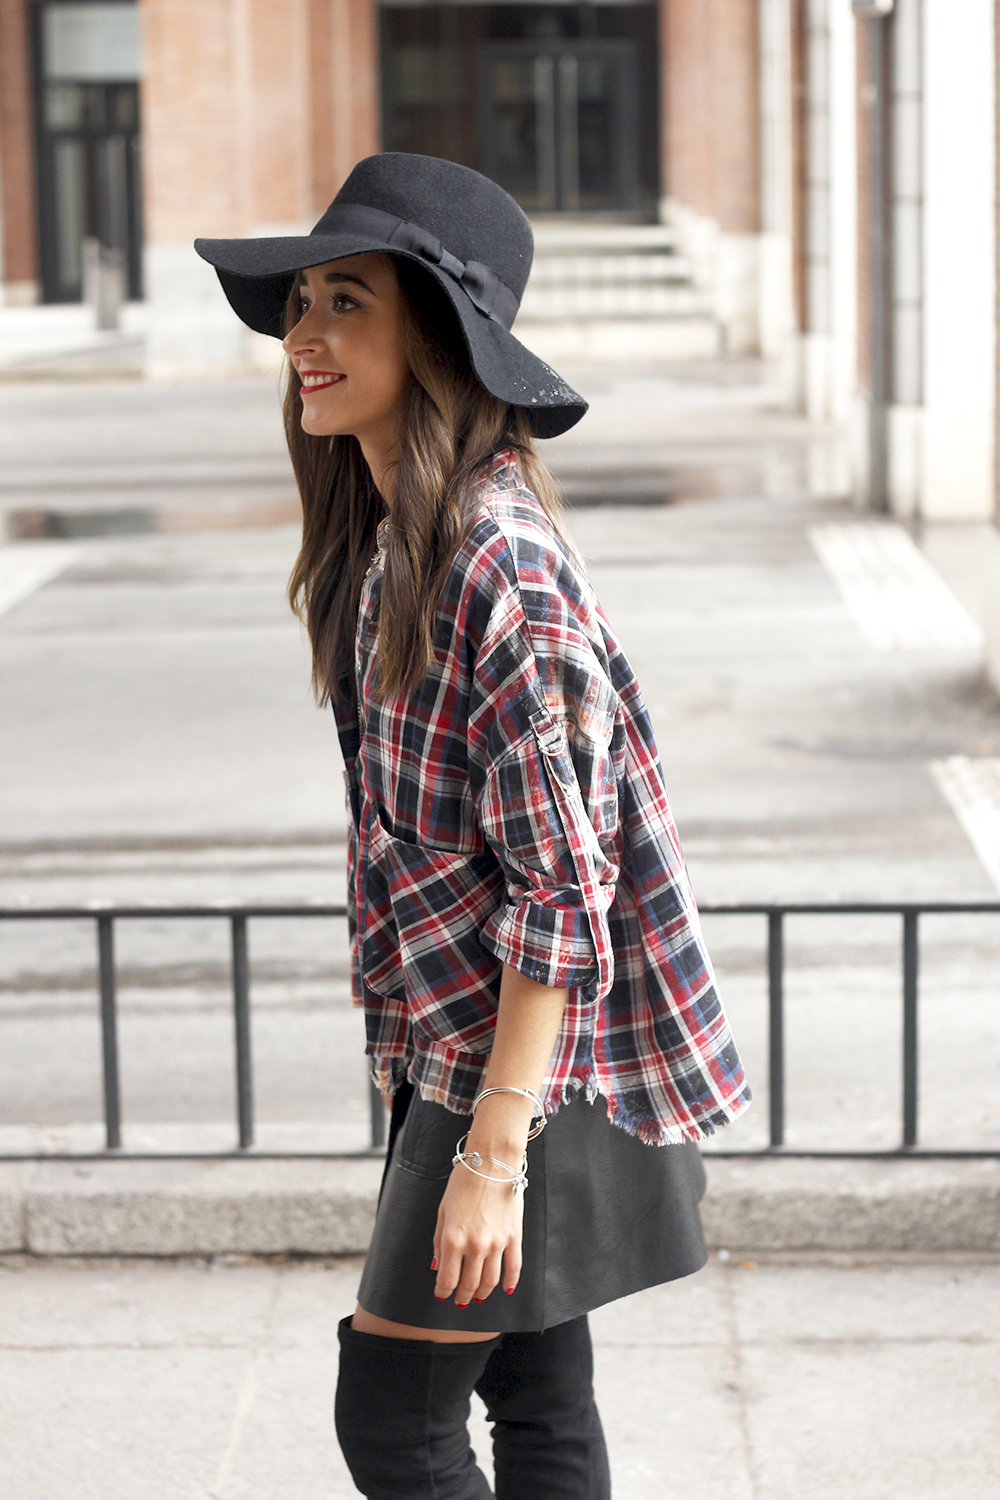 tartan shirt leather skirt over the knee boots accessories hat fashion outfit rainny day16